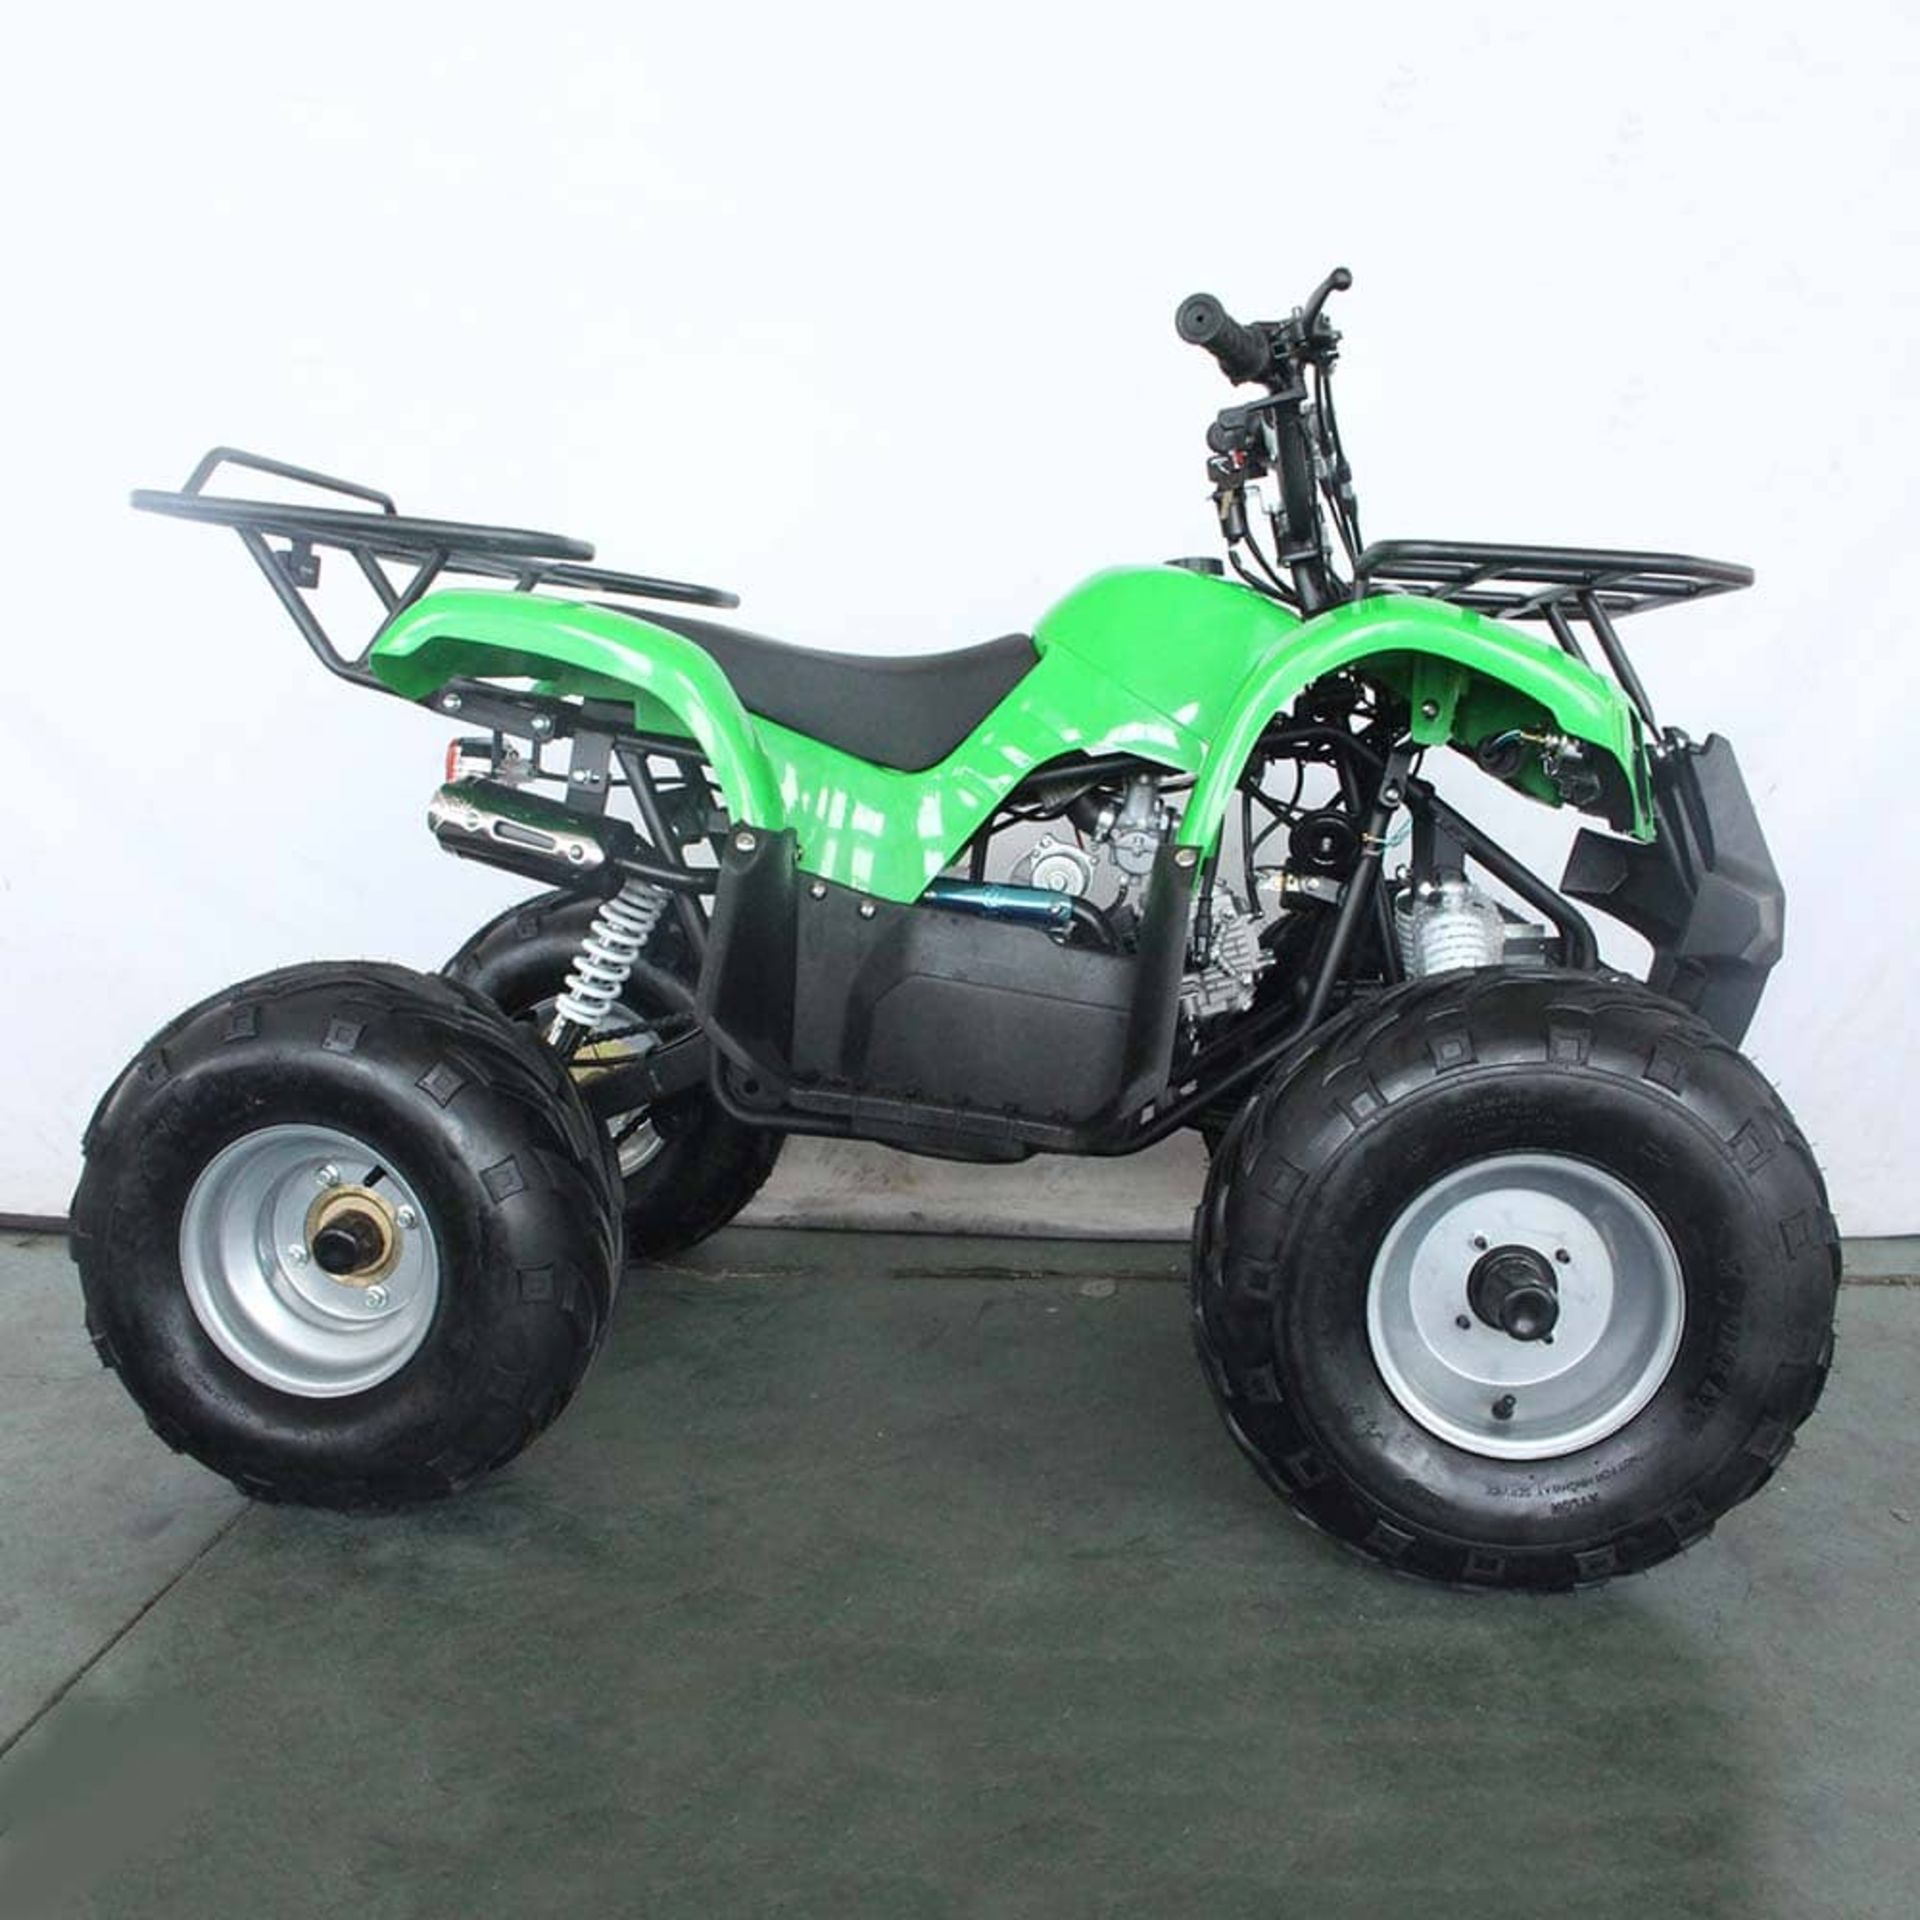 + VAT Brand New 125cc Condor Quad Bike - Four Stroke - Single Cylinder - Front Drum Brakes & Rear - Image 6 of 9